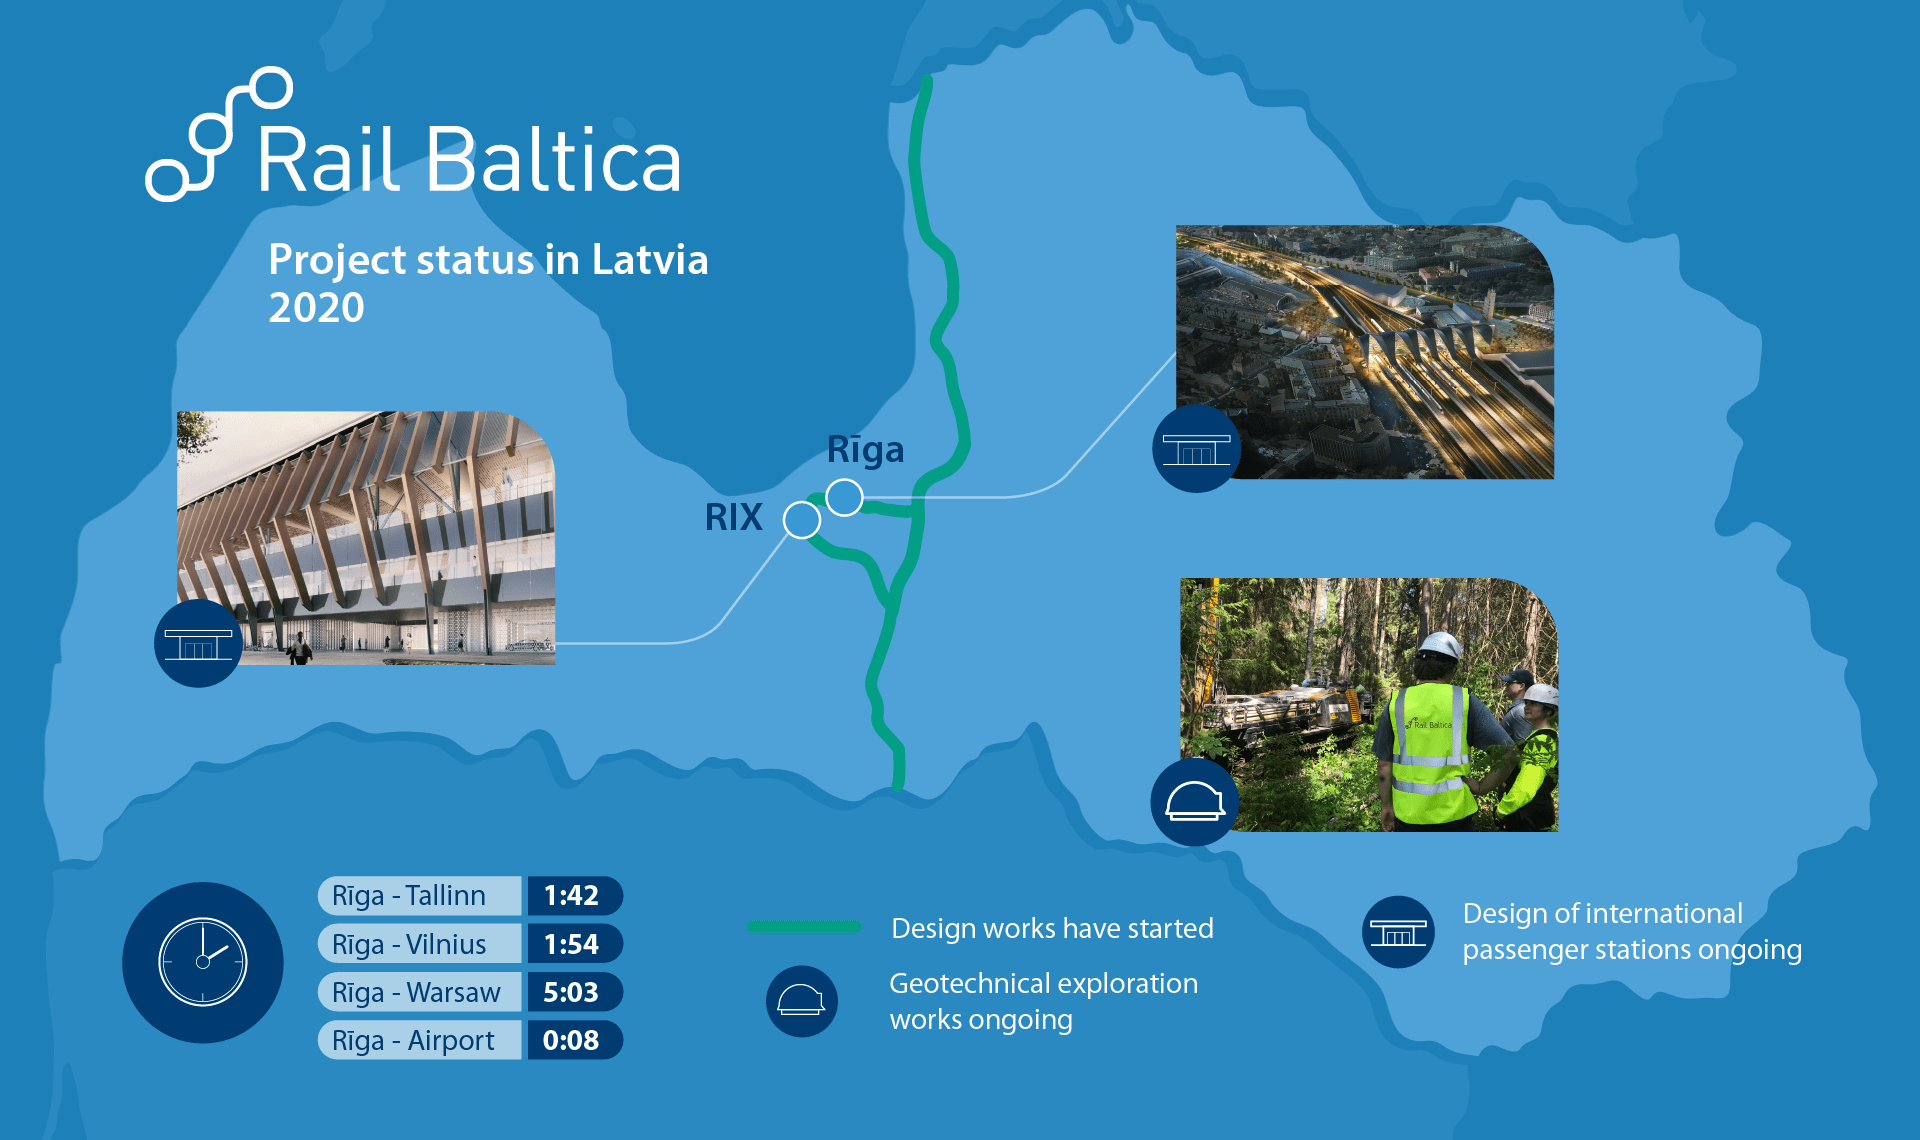 Rail Baltica project status for Latvia 2020